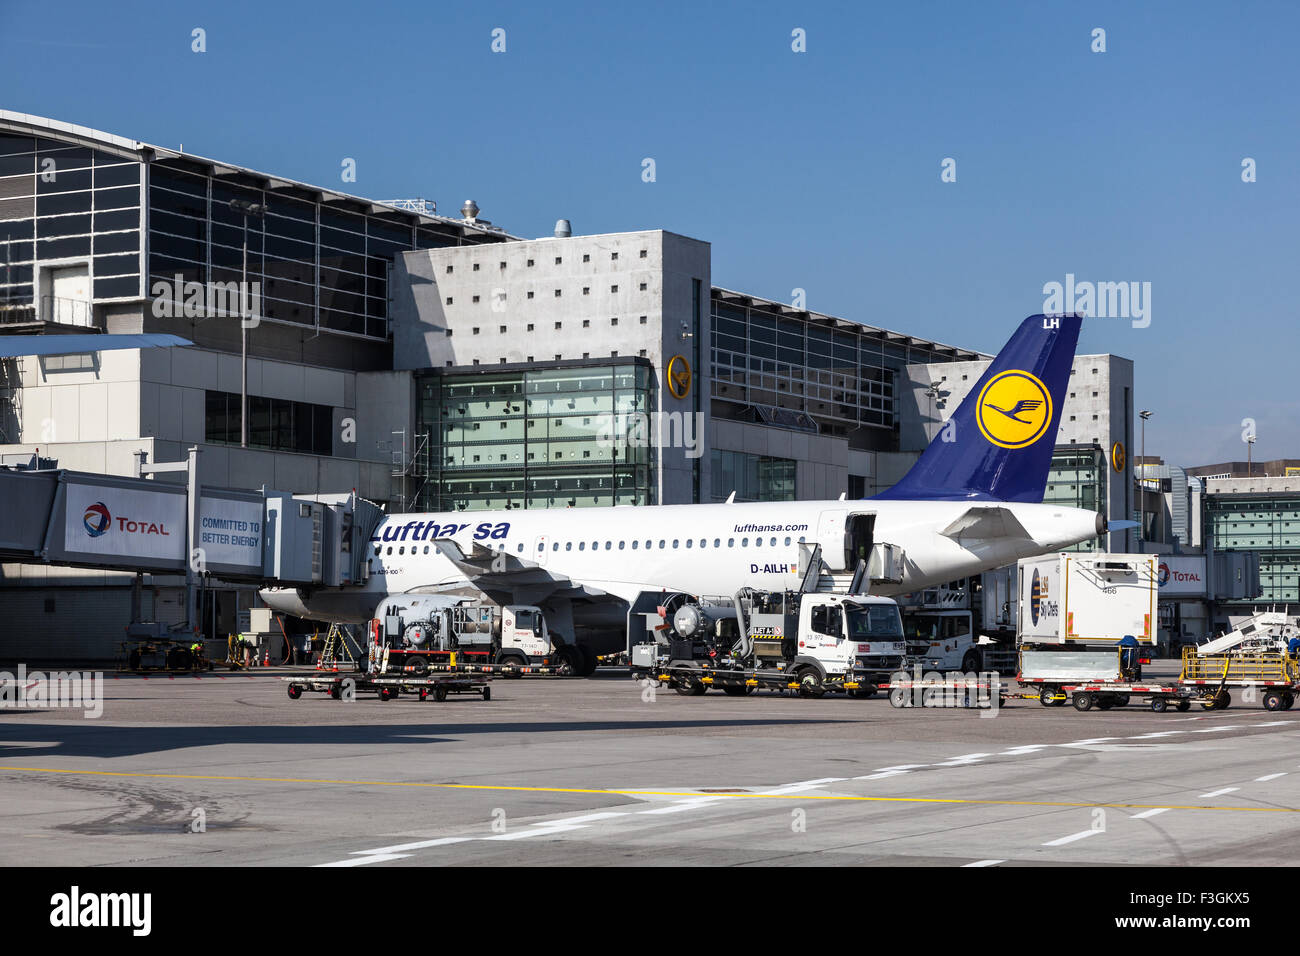 Lufthansa Airbus A319-100 at the Gate of the Frankfurt Airport. - Stock Image